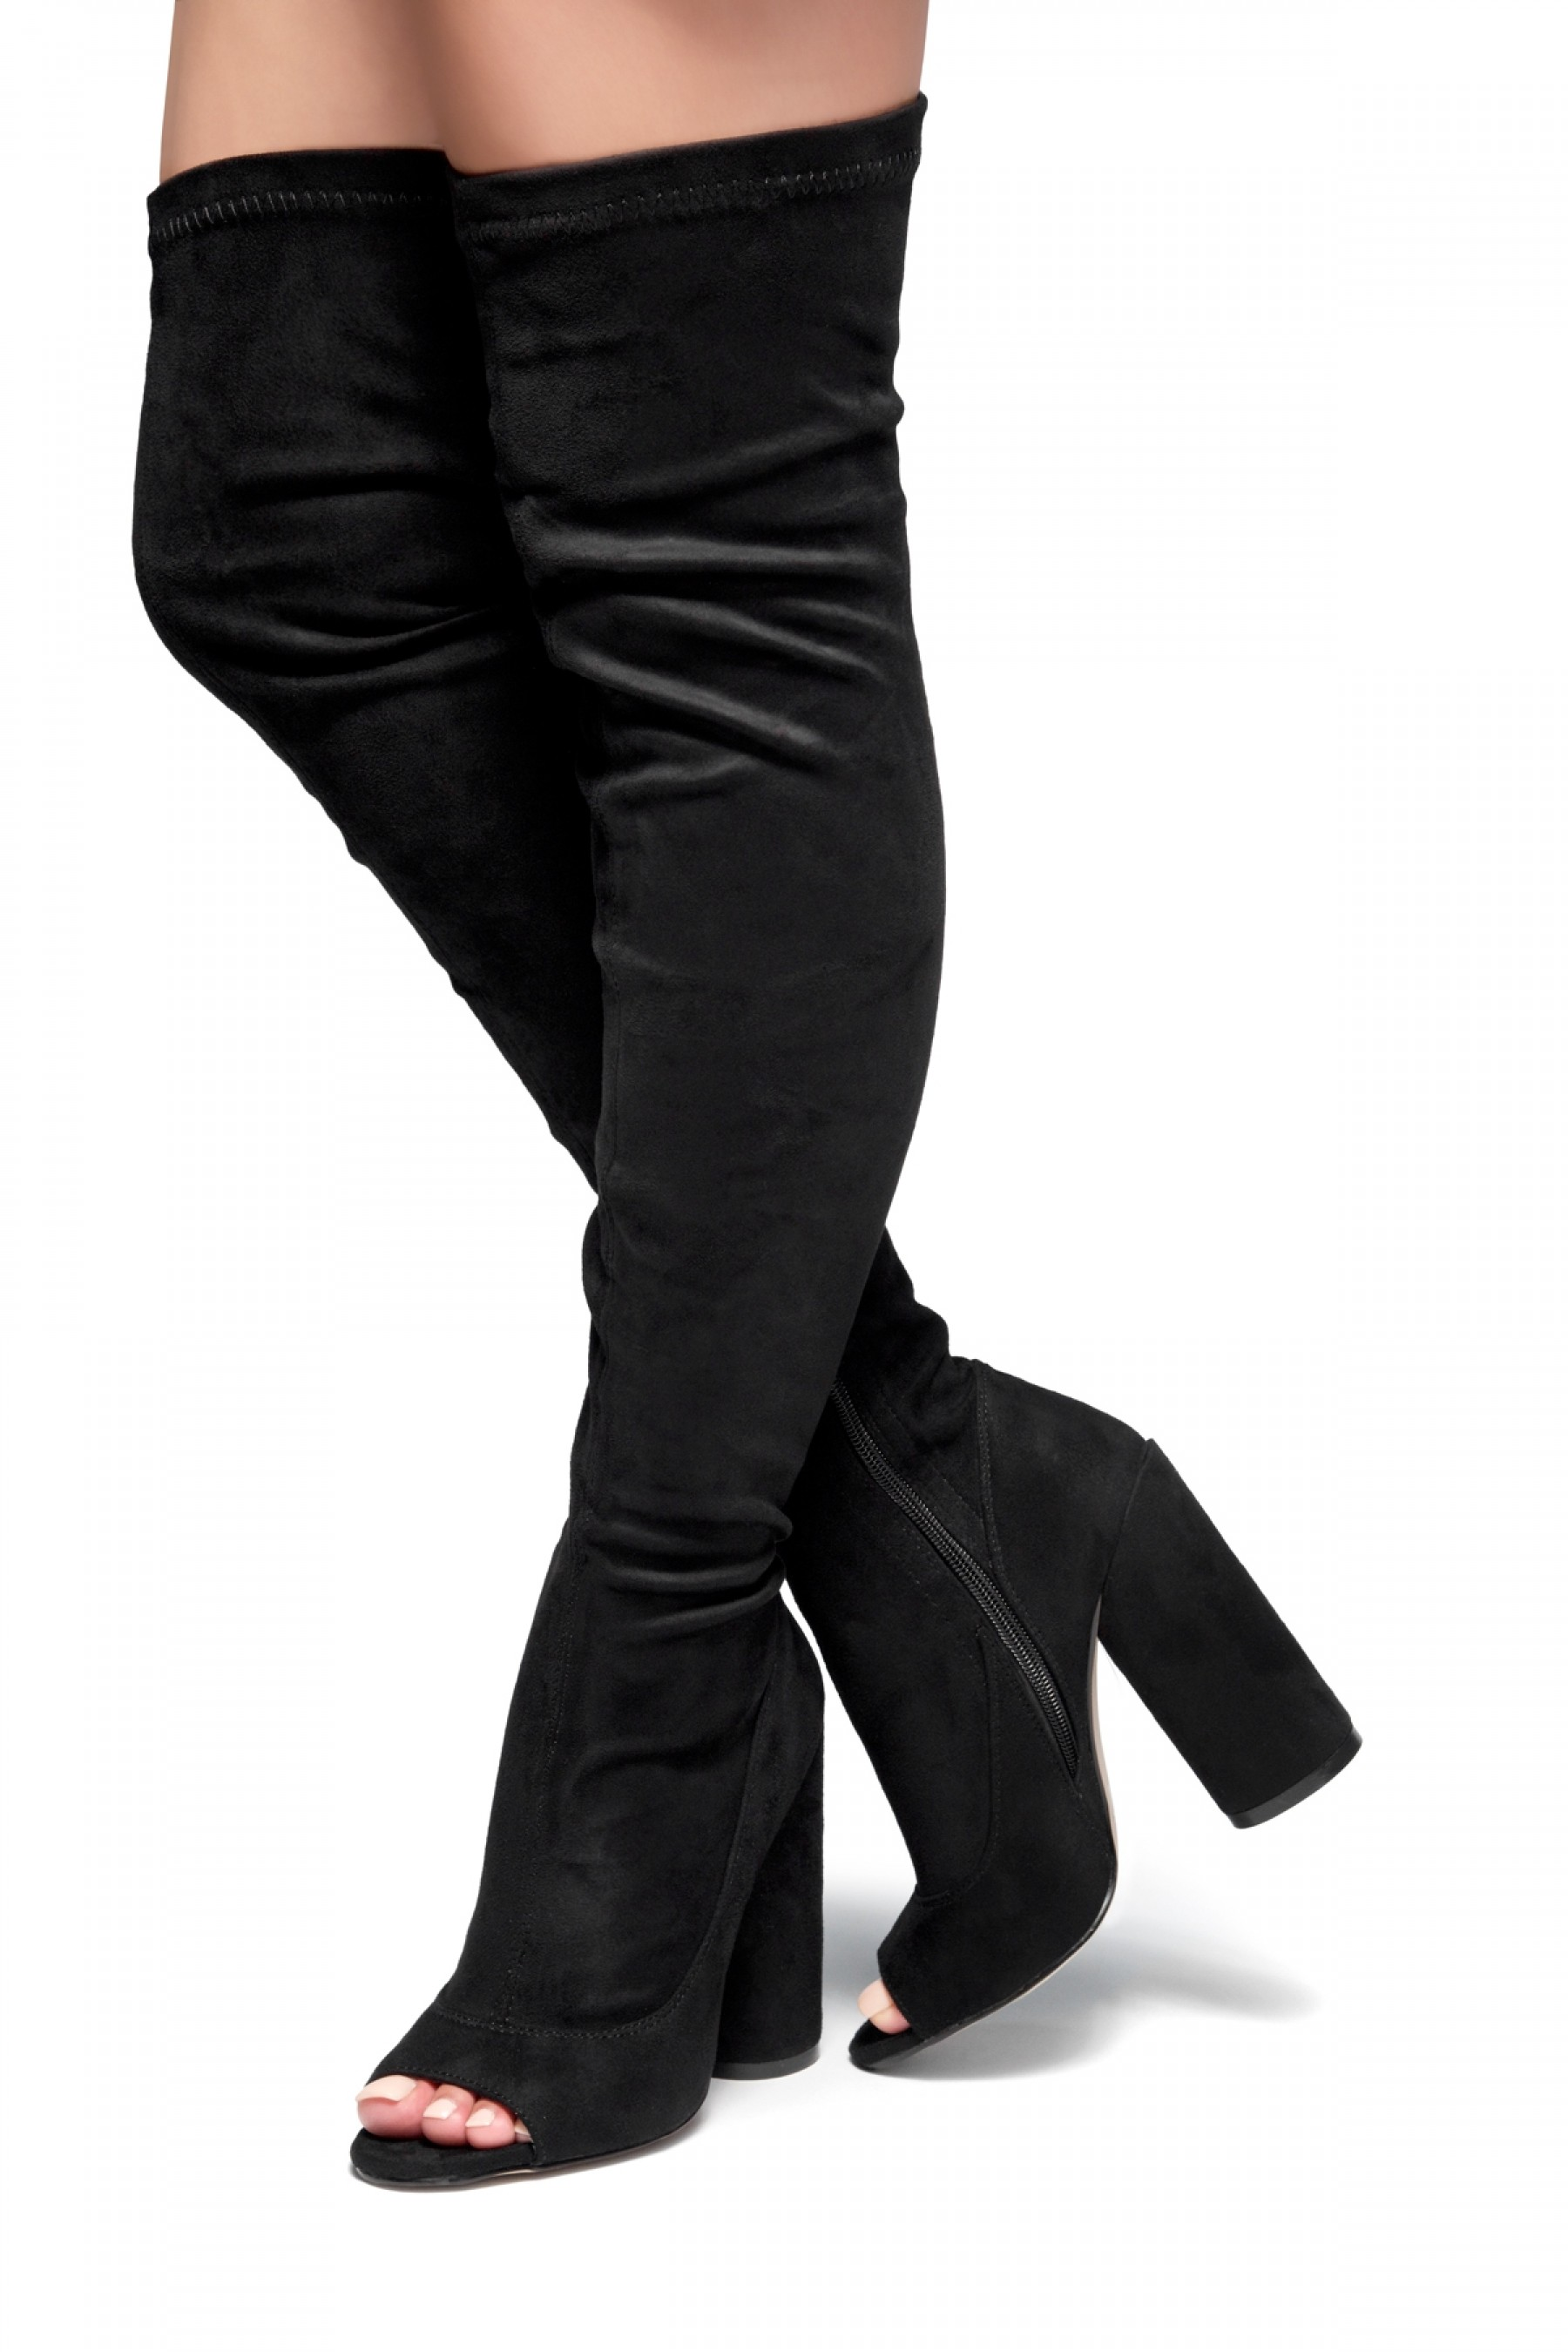 12843e8684ea HerStyle Malorey Sock fit peep toe boots, thigh high boots, and round ...